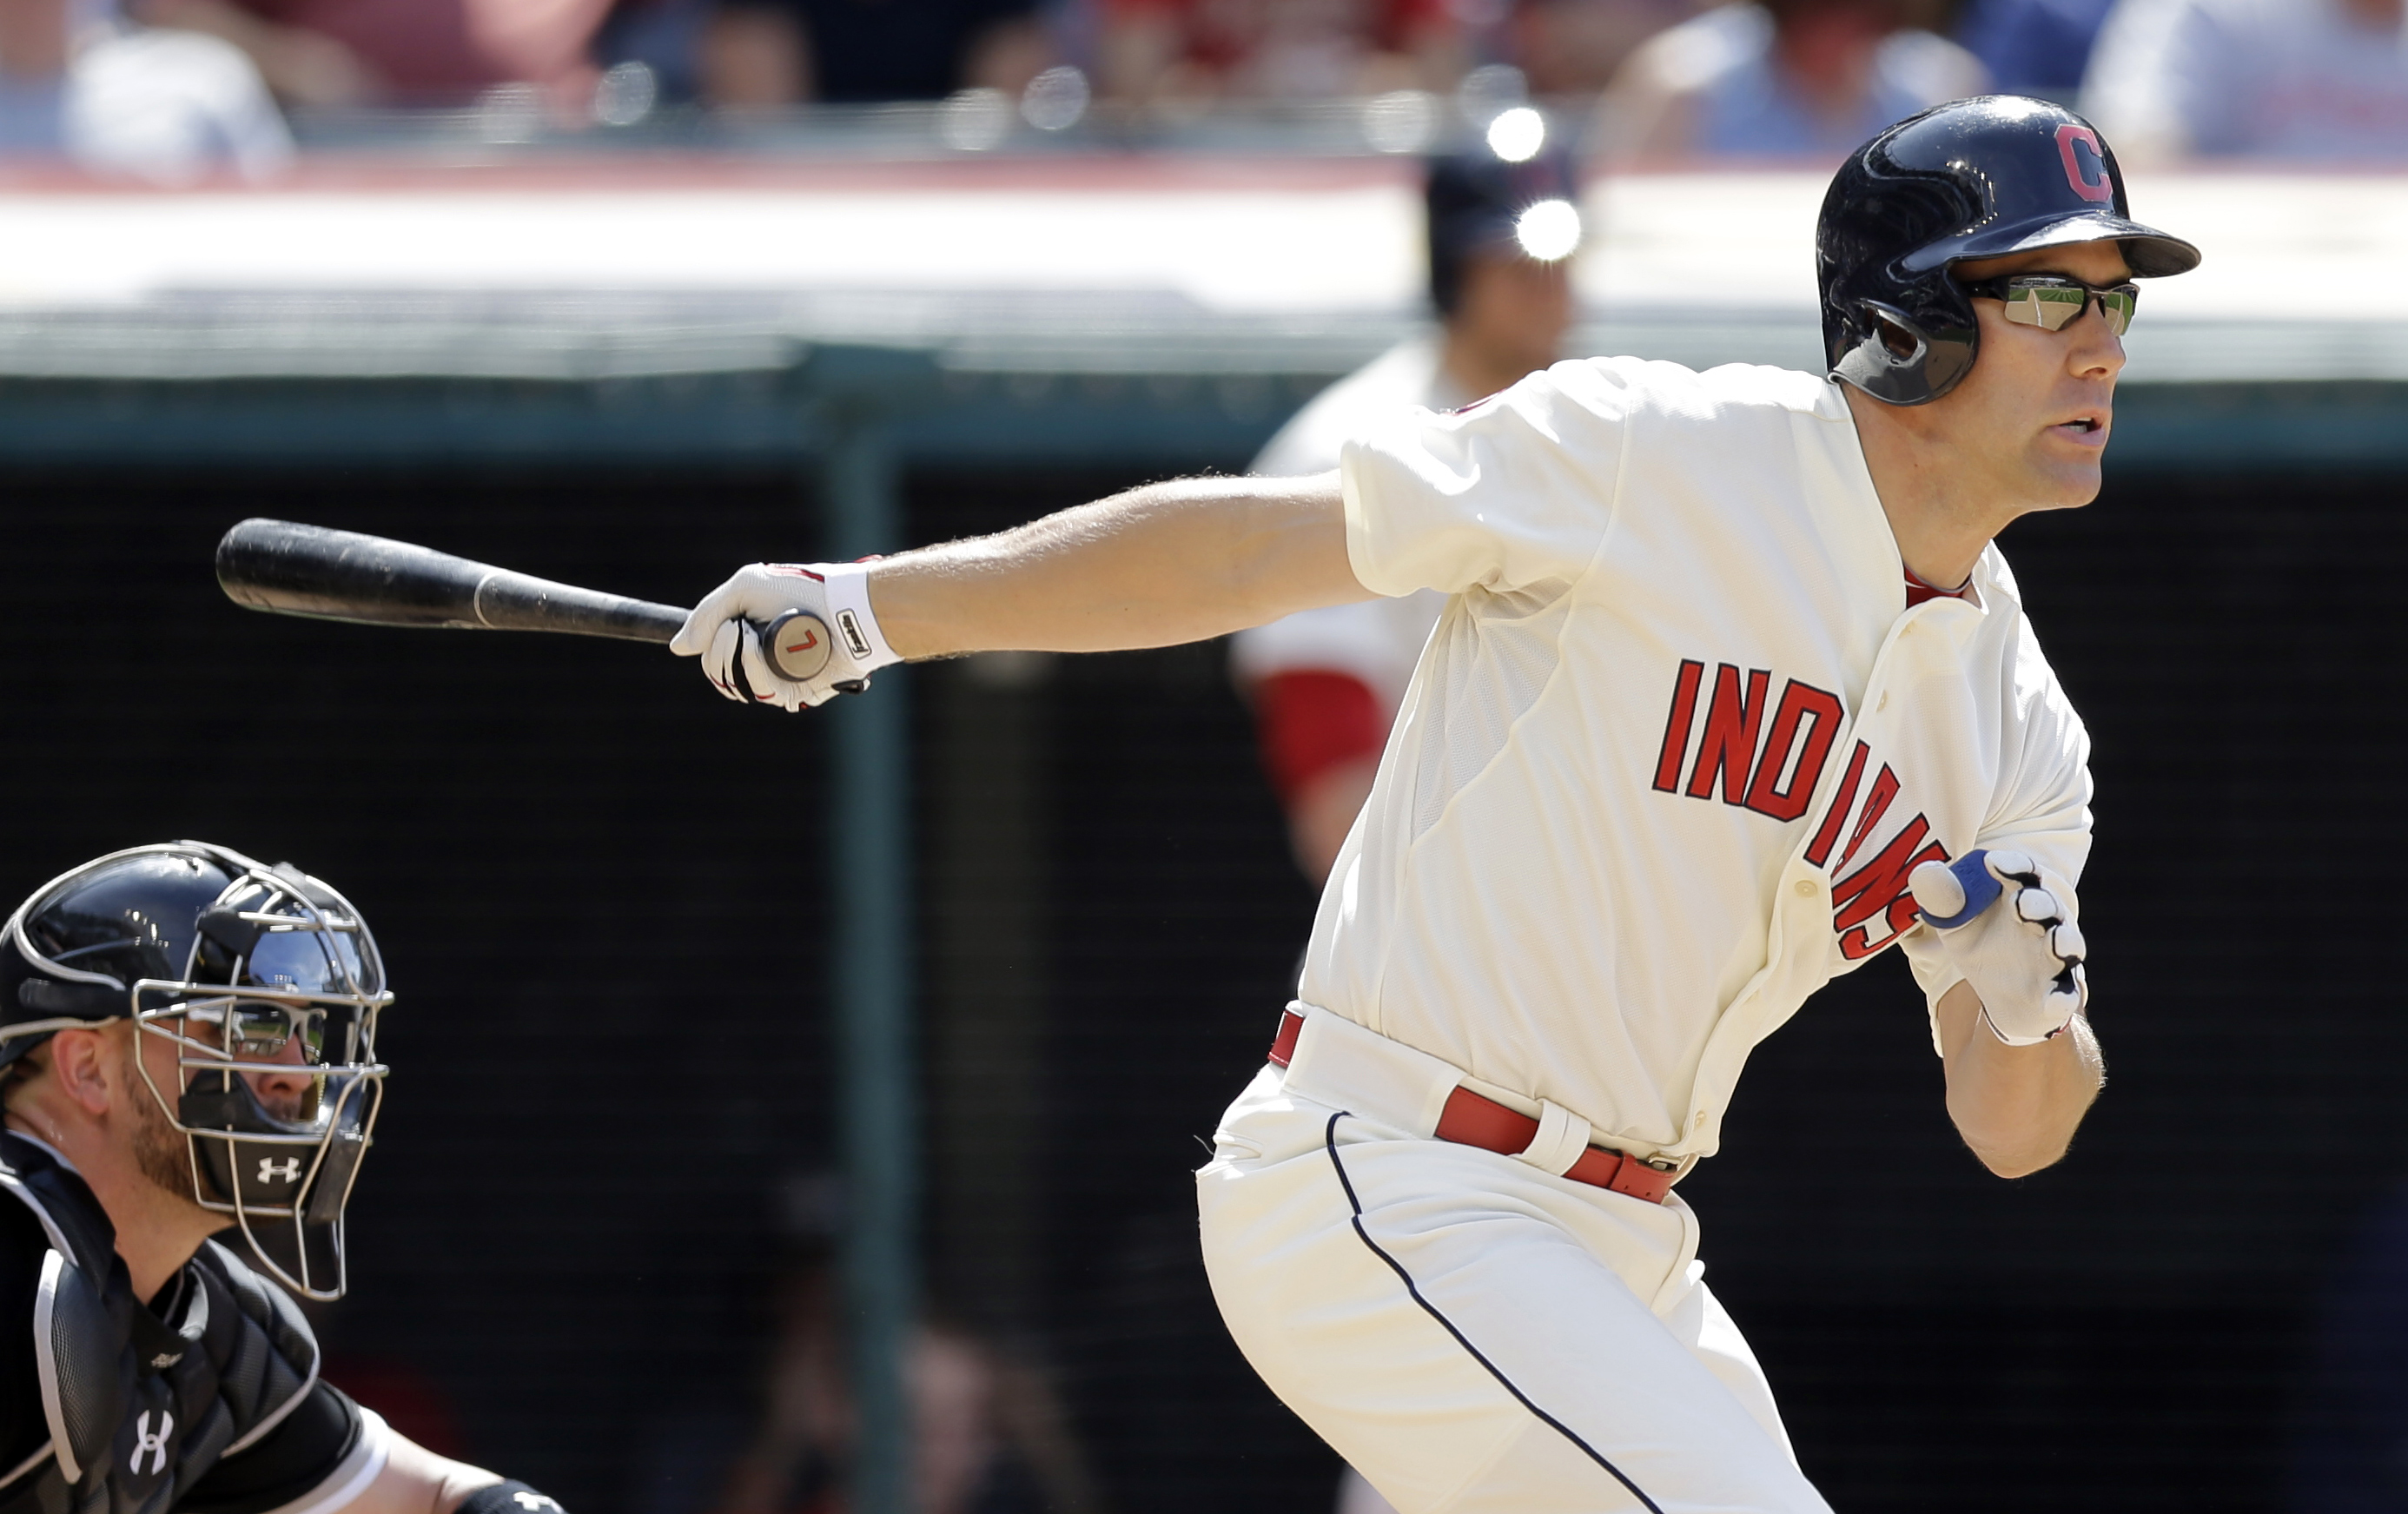 Cleveland Indians' David Murphy, right, grounds out in the ninth inning of a baseball game against the Chicago White Sox, Sunday, July 26, 2015, in Cleveland. Giovanny Urshela scored on the play. White Sox catcher Tyler Flowers looks on. The White Sox won